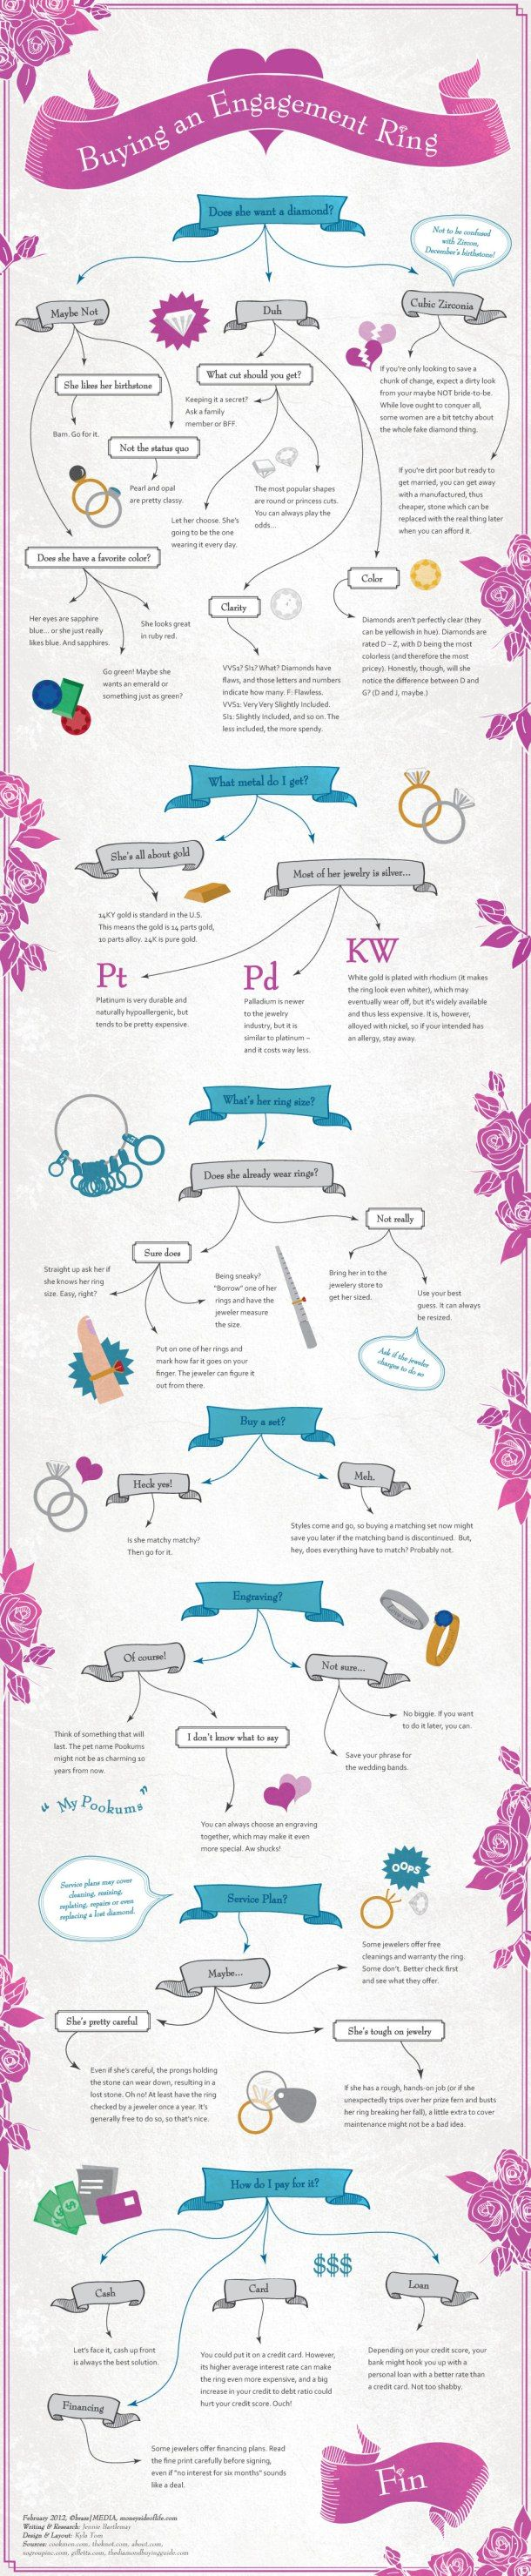 Buying an Engagement Ring [INFOGRAPHIC] #engagement #ring